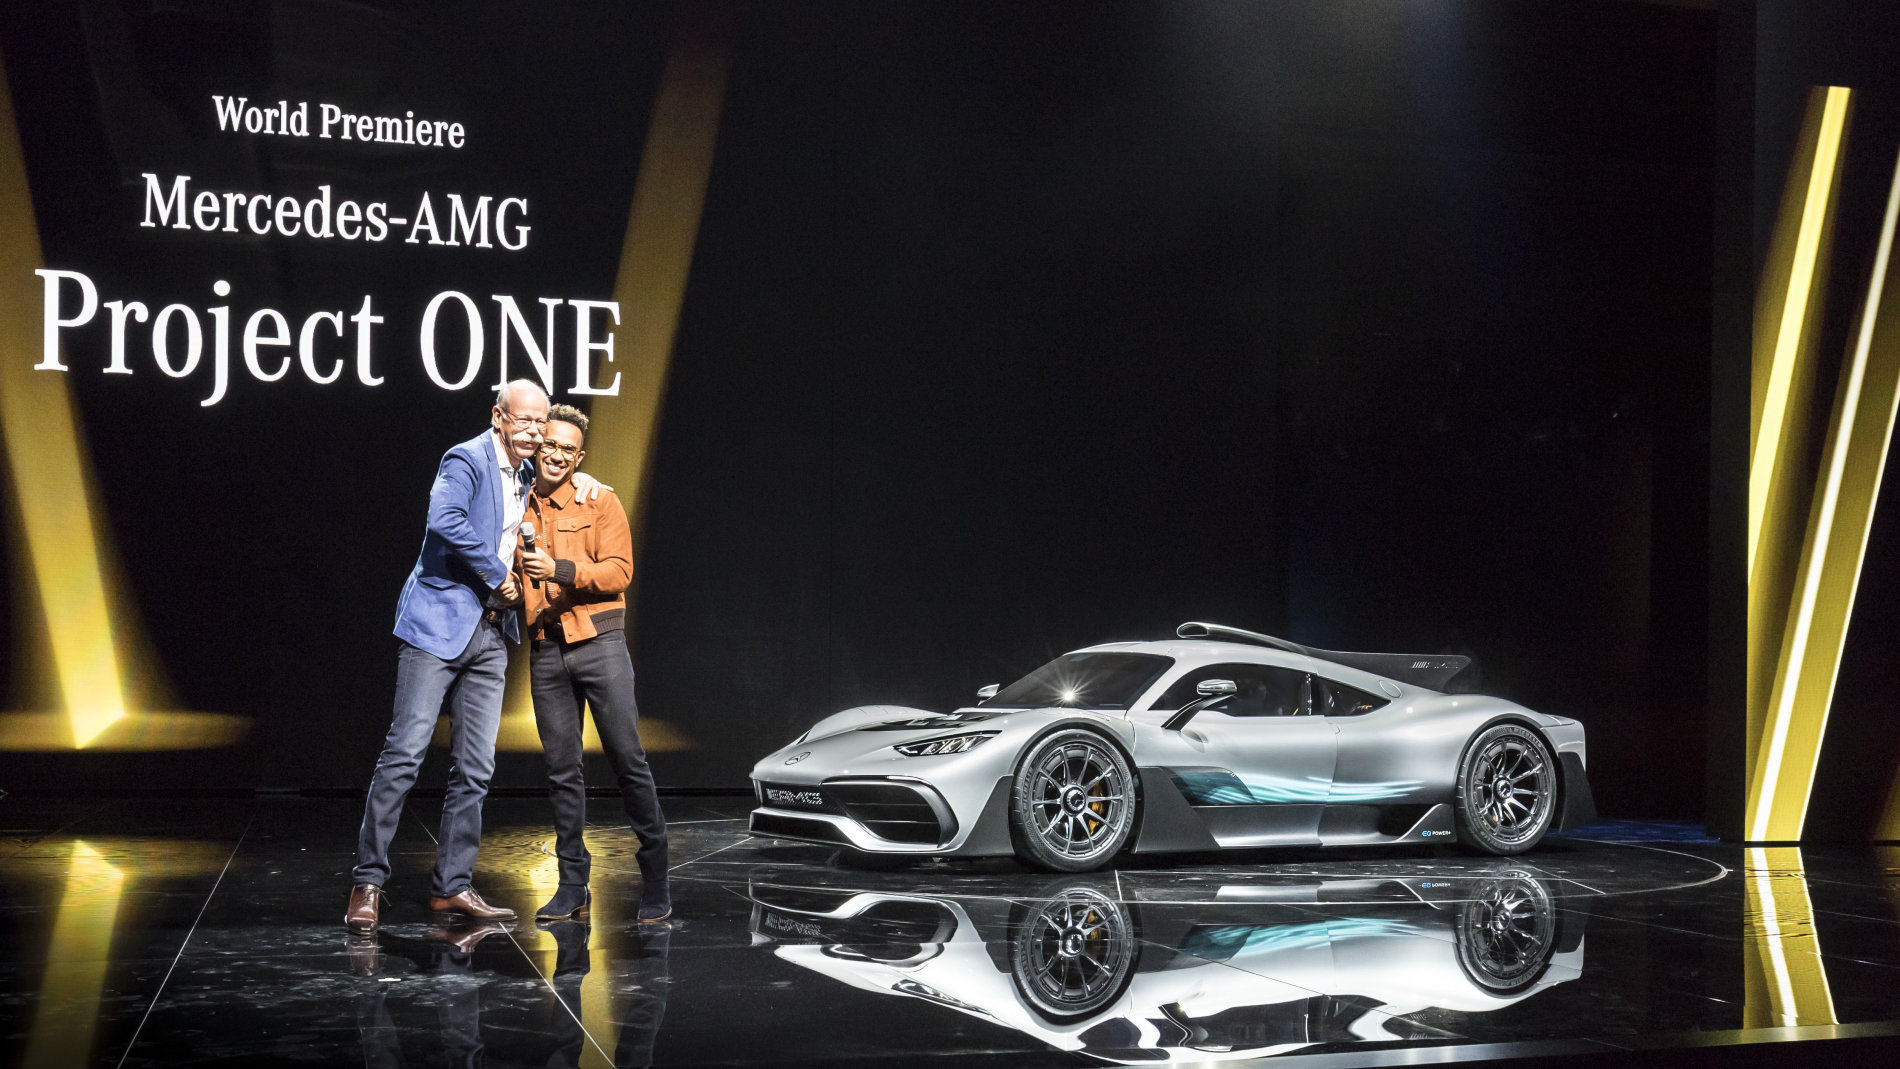 Mercedes AMG Project One - Poze reale - Mercedes AMG Project One - Poze reale